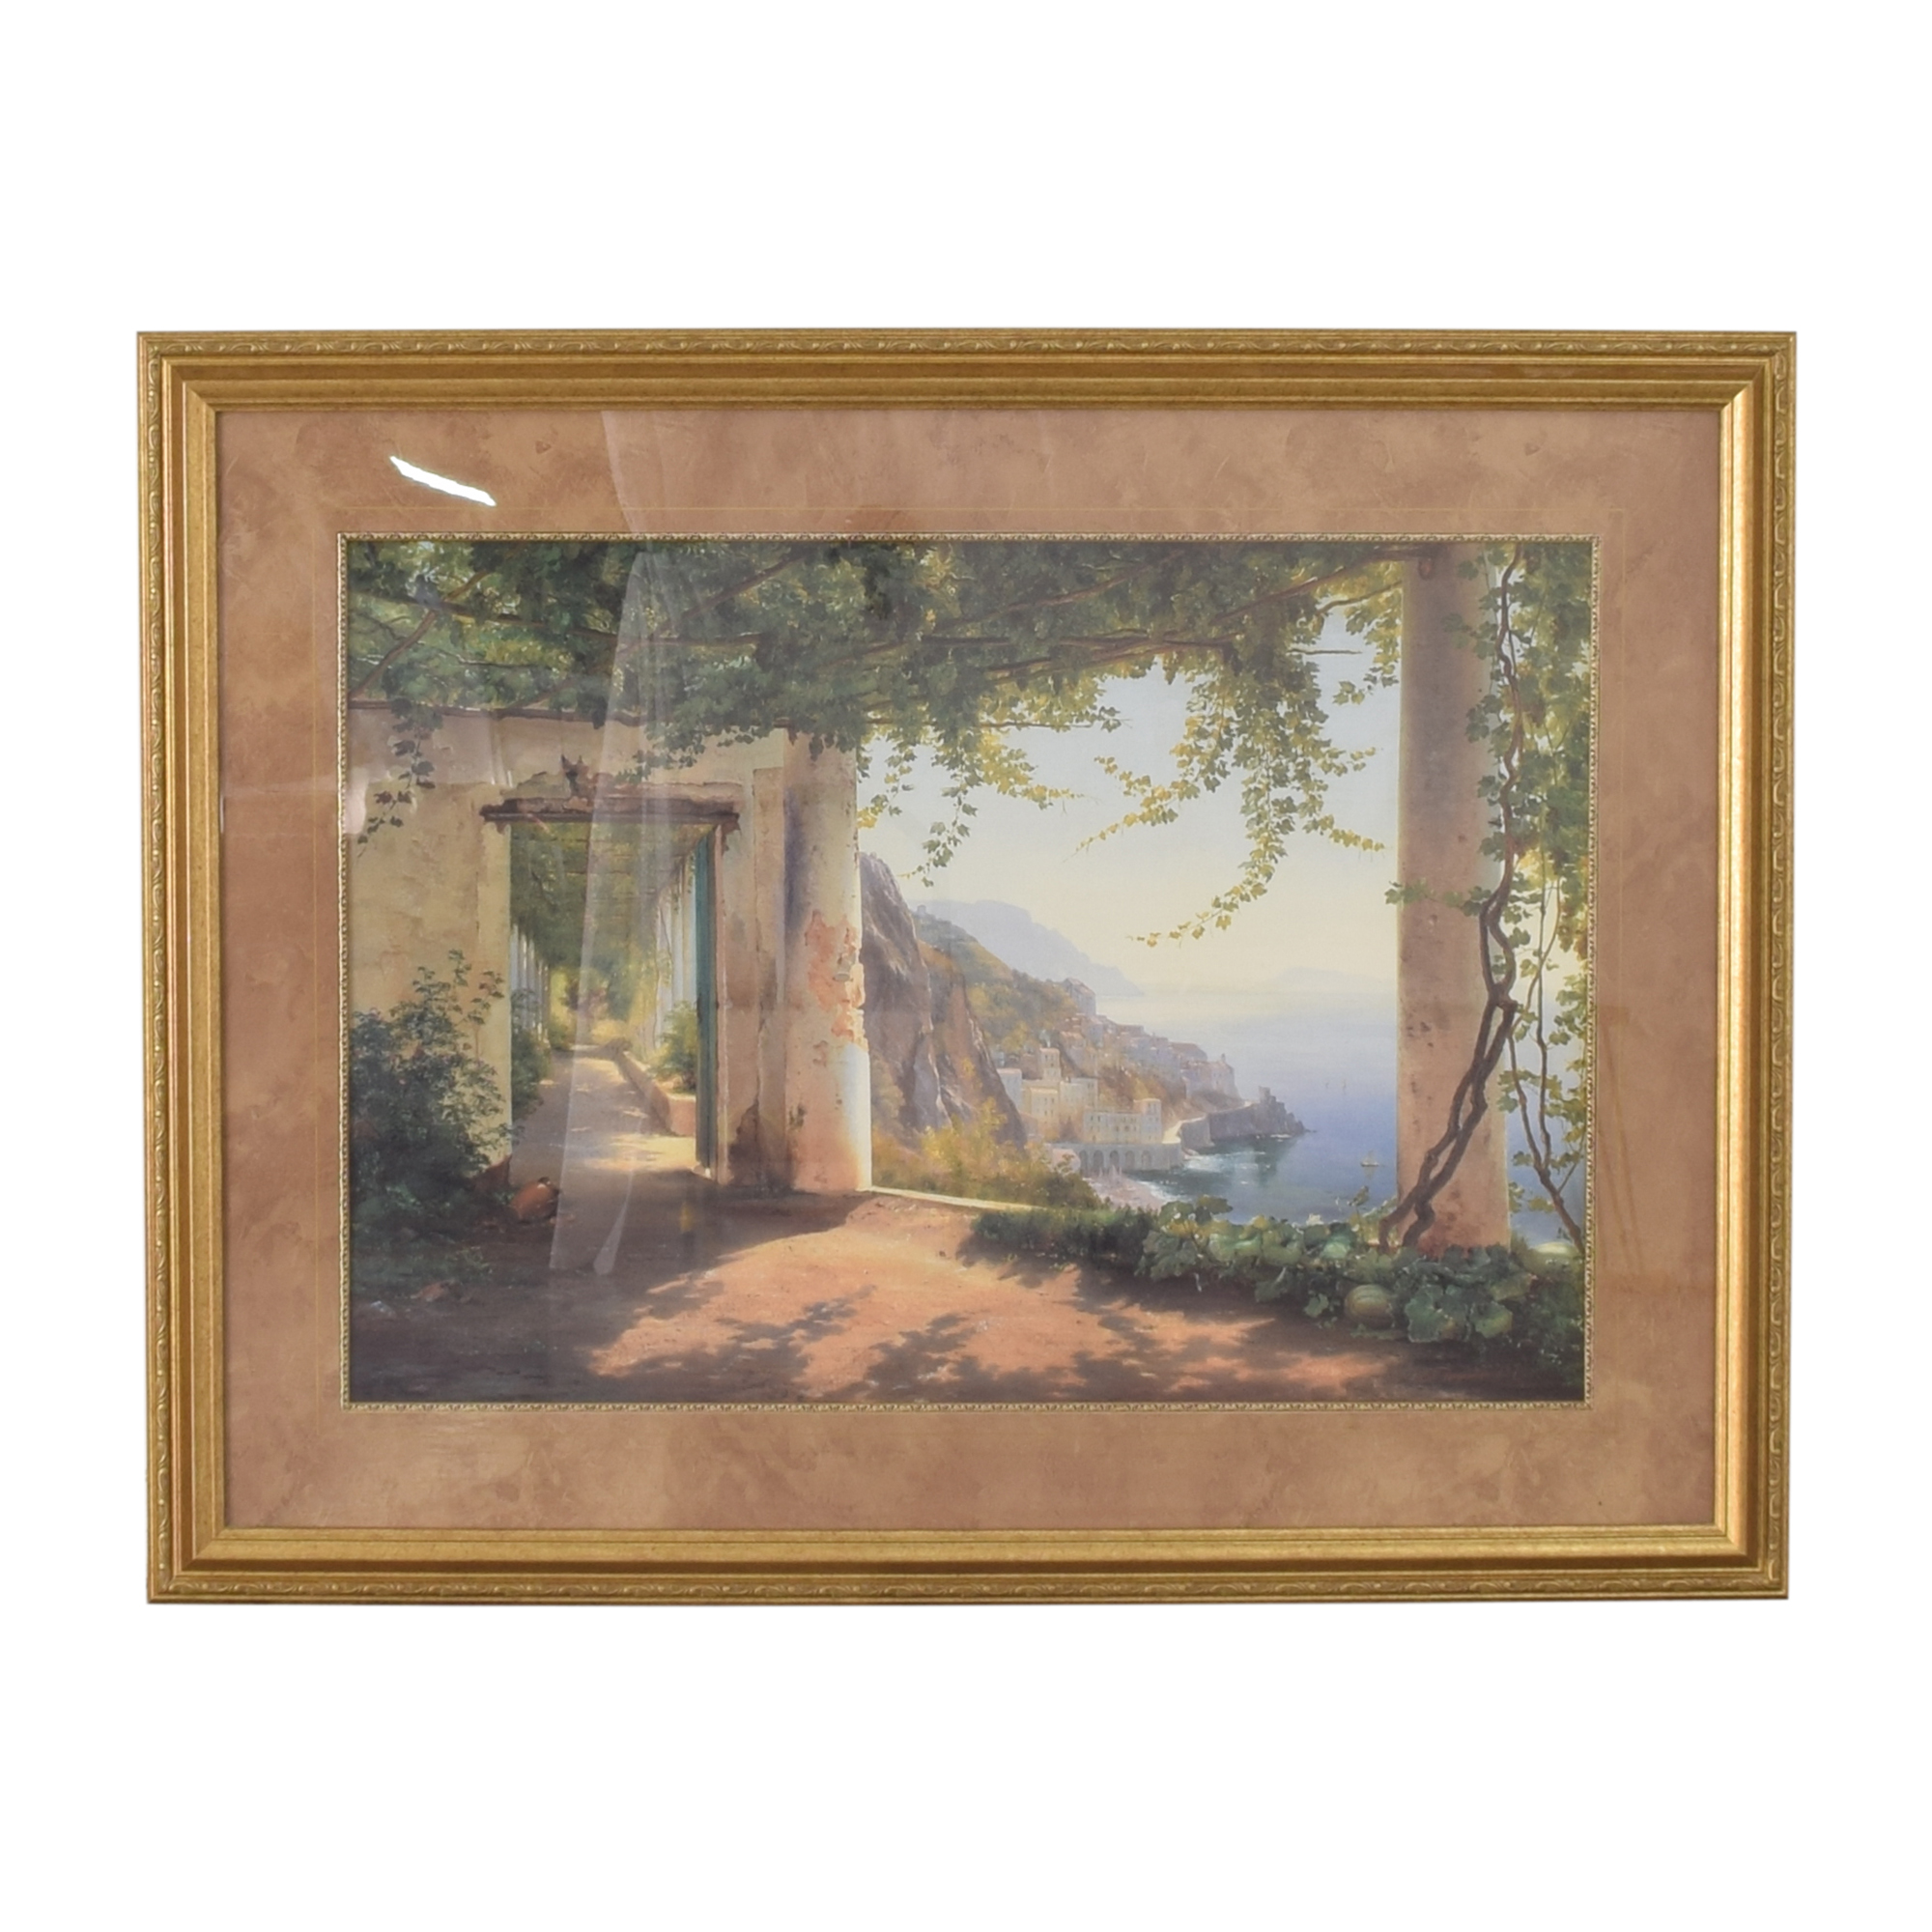 buy Ethan Allen Amalfi Coast View Wall Art Ethan Allen Decor